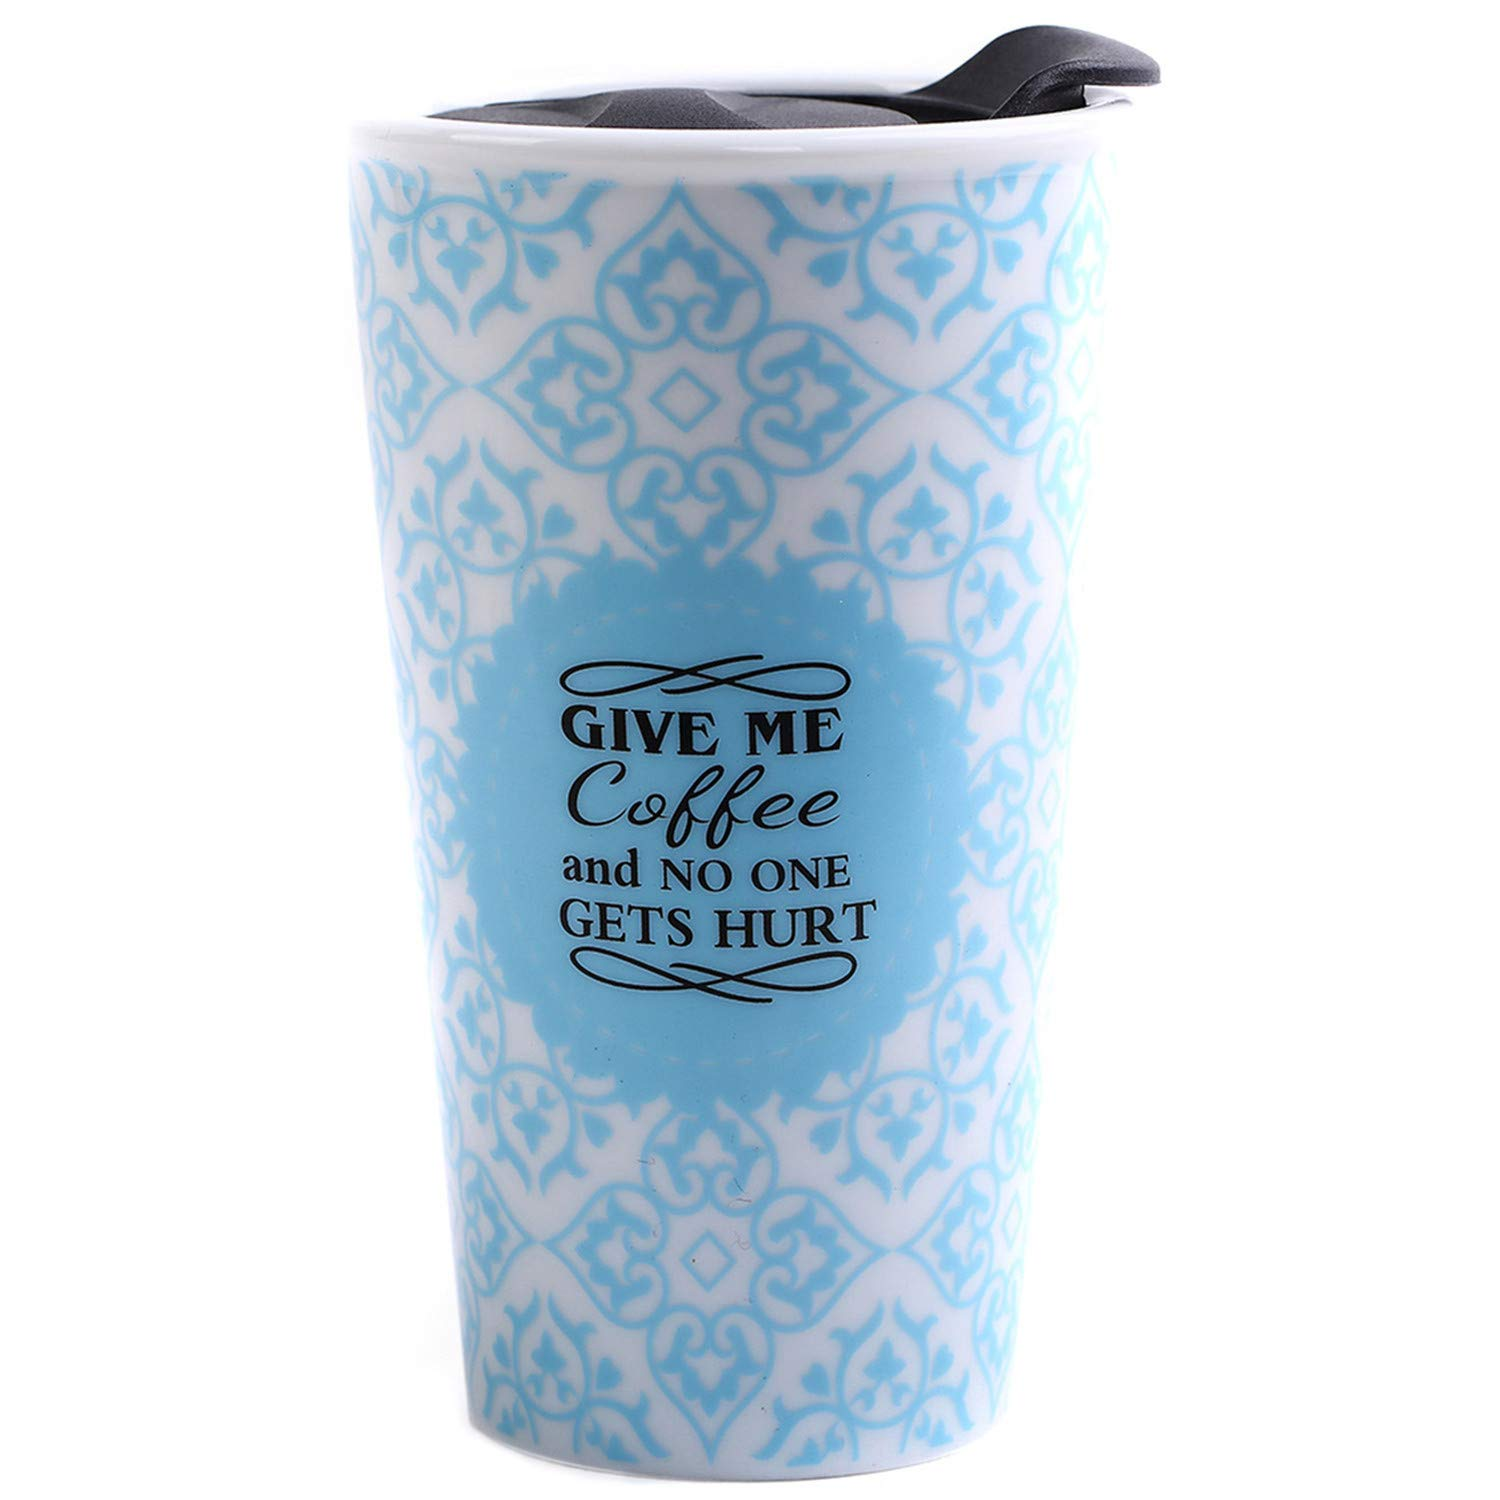 CEDAR HOME Travel Coffee Ceramic Mug Tea Cup Double Wall Porcelain With Lid 11oz., Blue